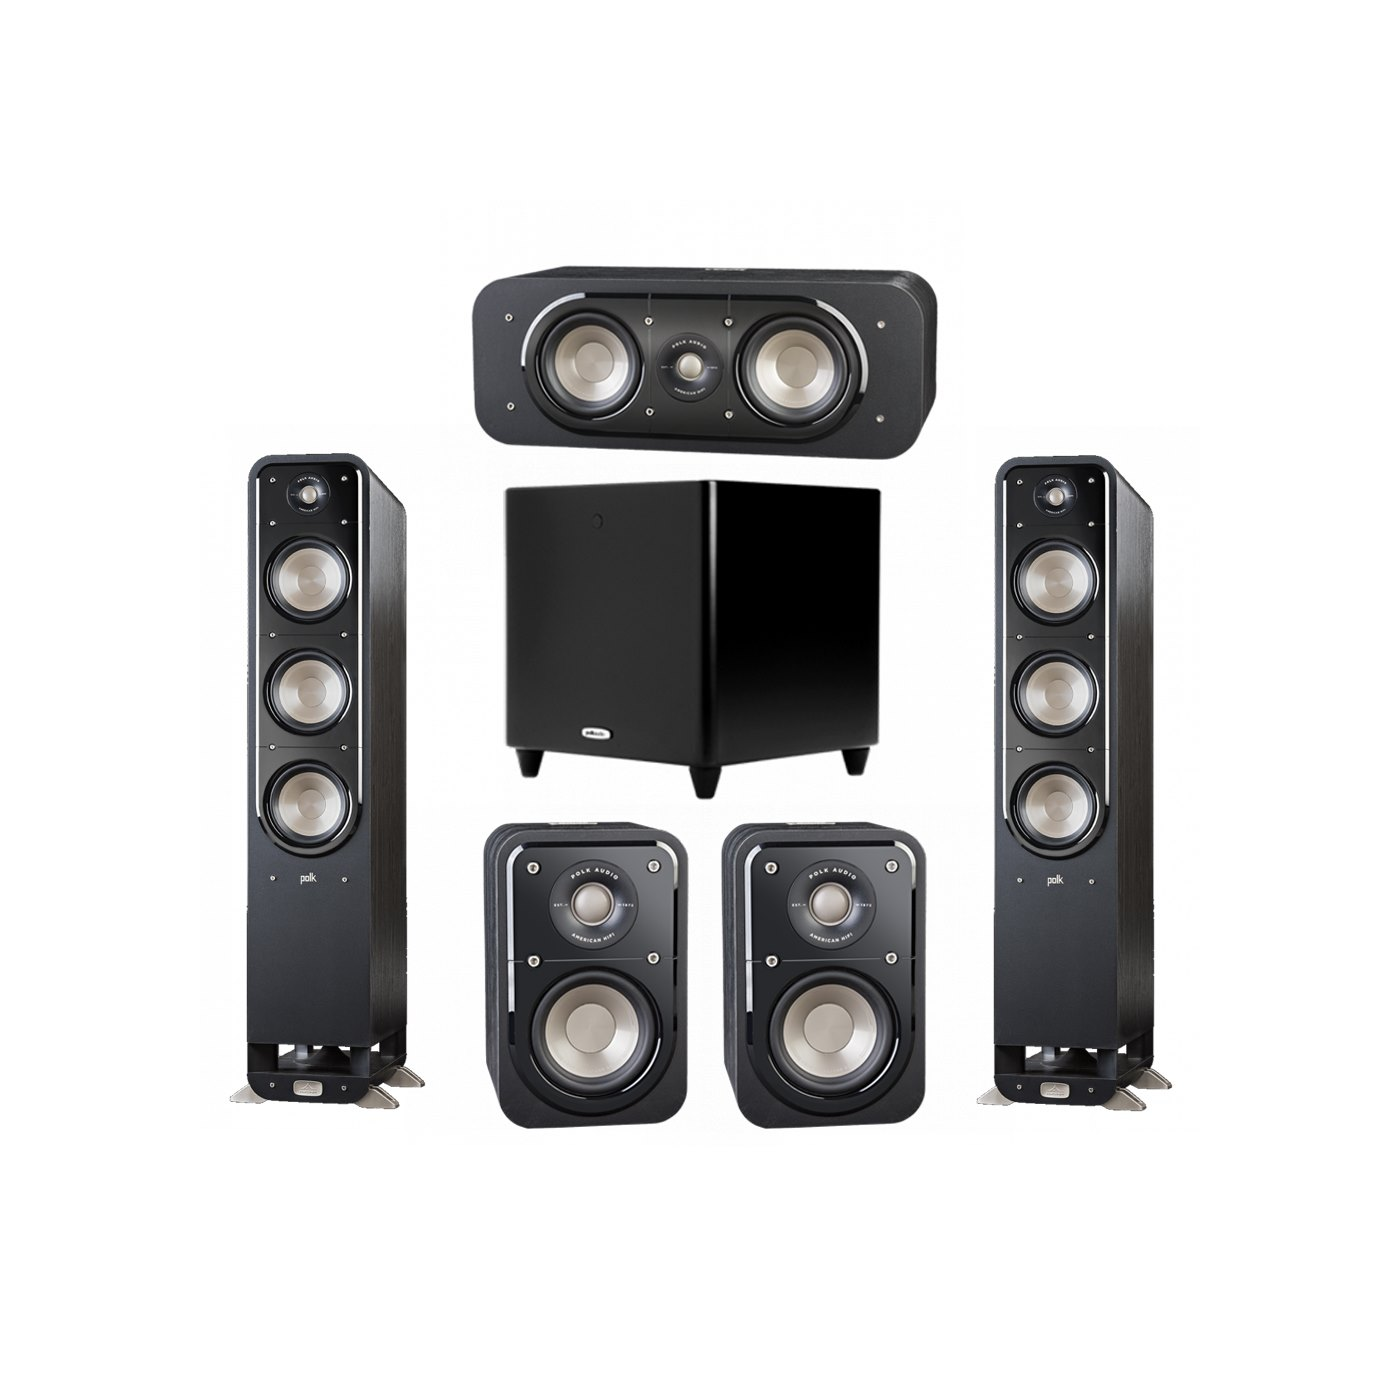 Polk Audio Signature 5.1 System with 2 S60 Tower Speaker, 1 Polk S30 Center Speaker, 2 Polk S10 Surround Speaker, 1 Polk DSW PRO 550 wi Subwoofer